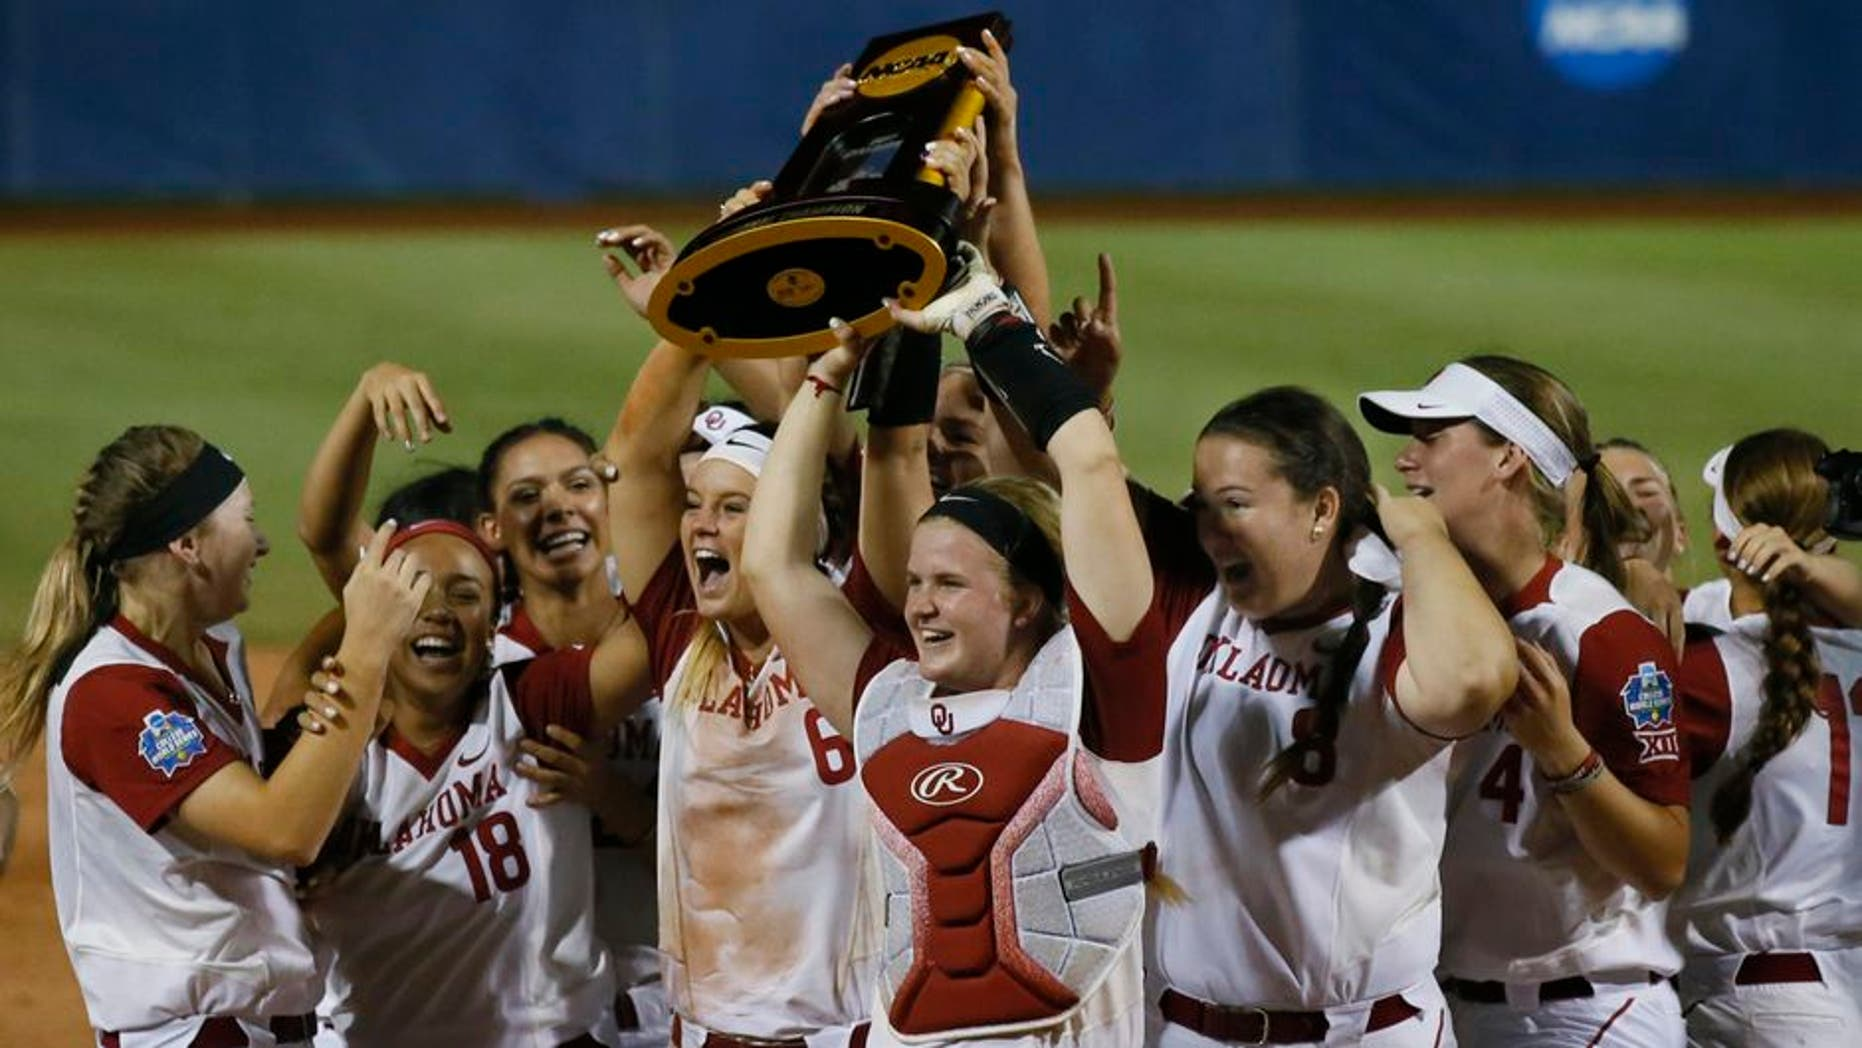 The Oklahoma team celebrates after defeating Florida in the second game of the best-of-three championship series in the NCAA Women's College World Series in Oklahoma City, Tuesday, June 6, 2017. Oklahoma won the game 5-4, and the championship. (AP Photo/Sue Ogrocki)